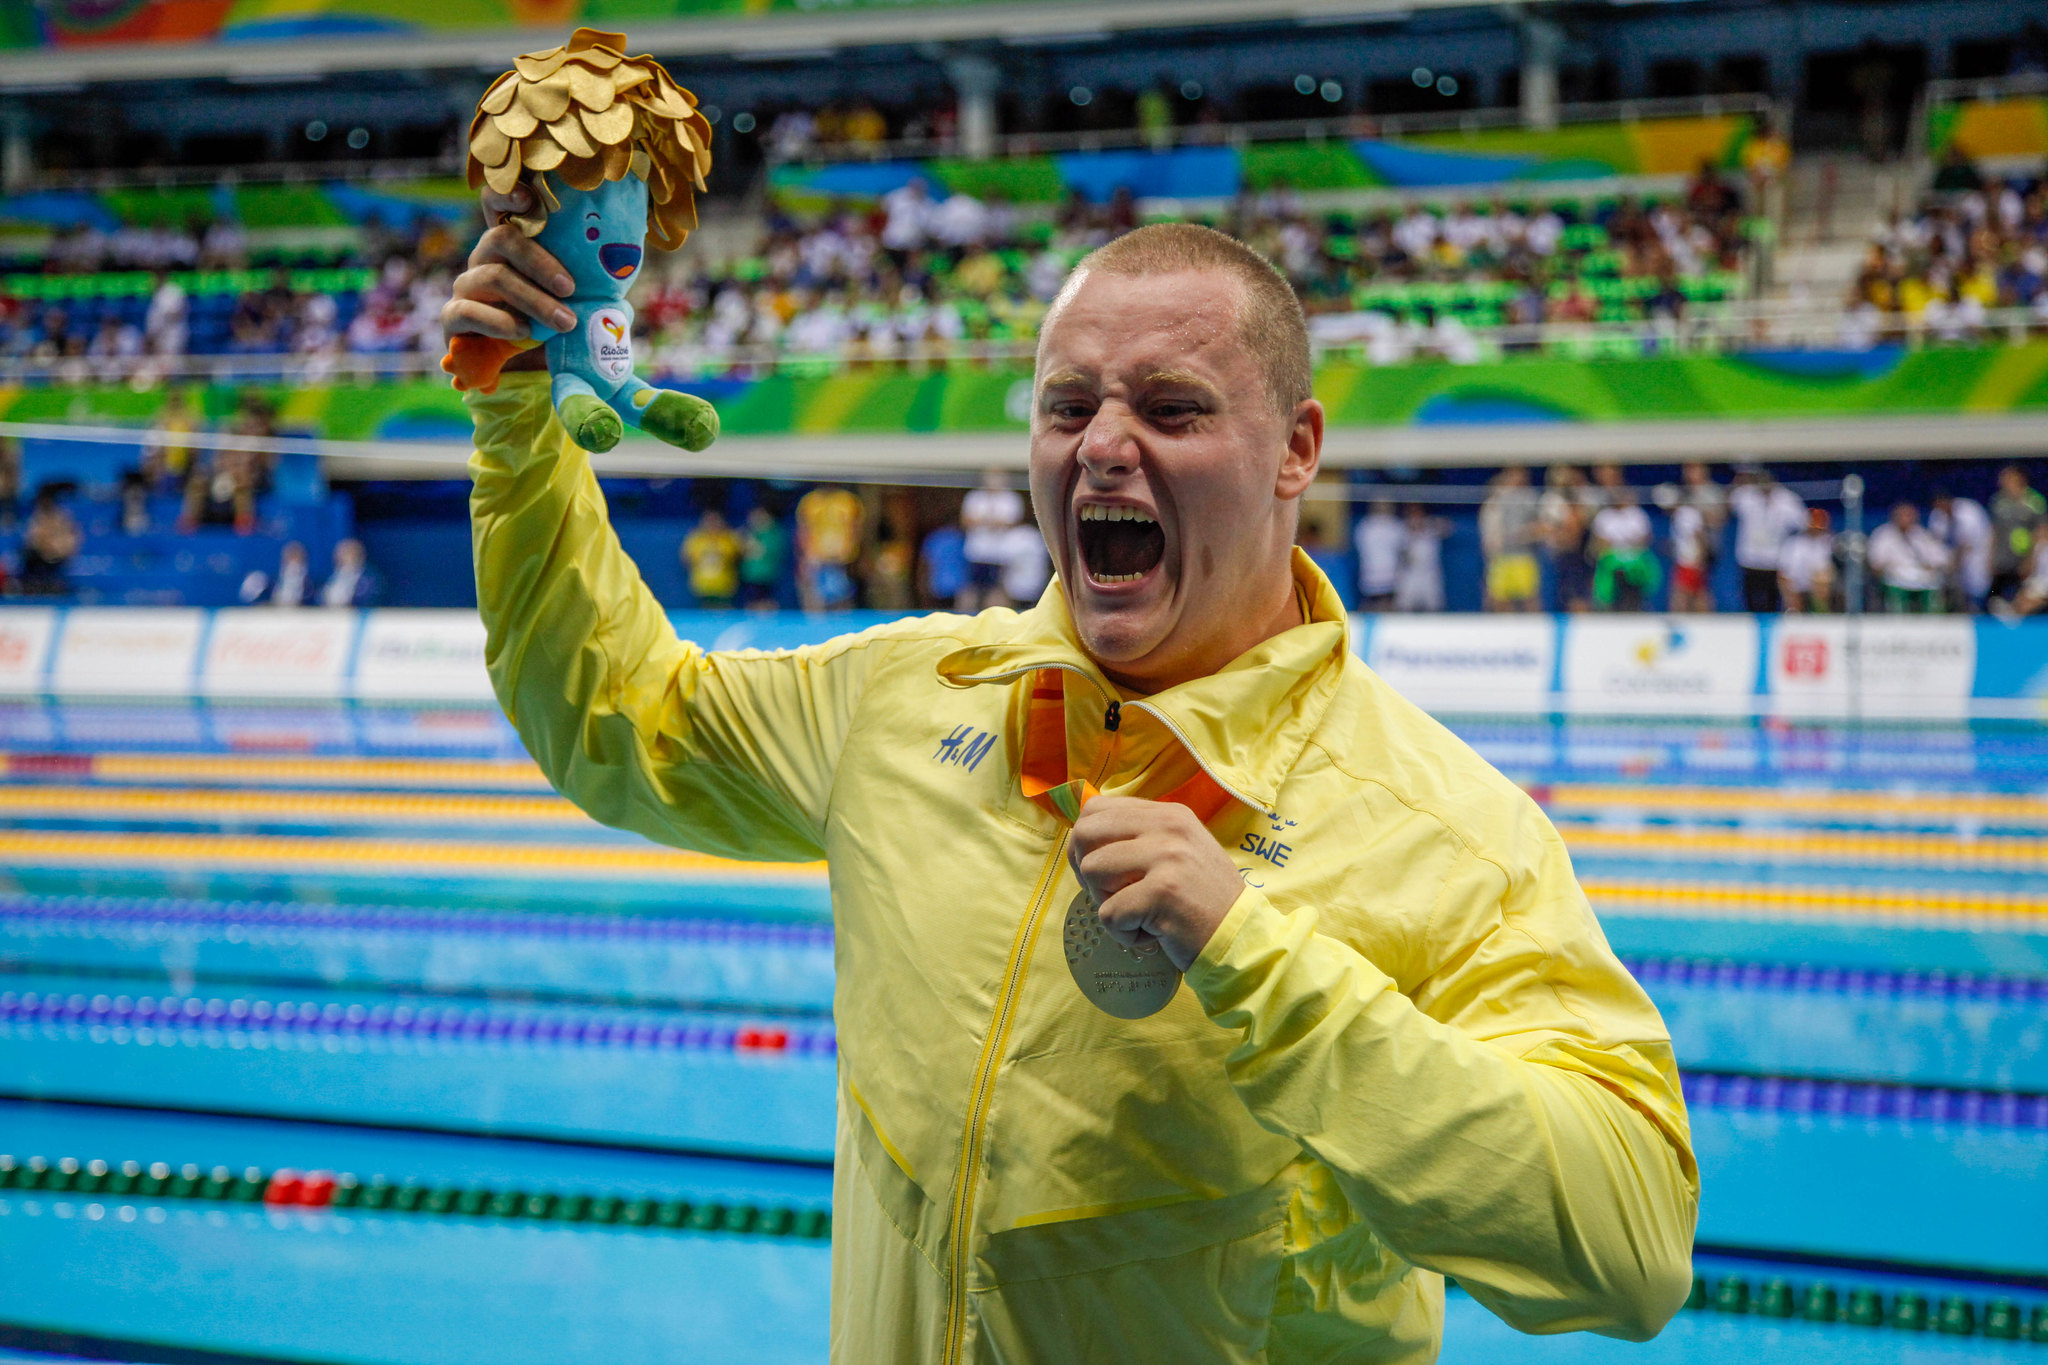 Karl Forsman Swimming 100 m breaststroke SB5 Gold medal - Paralympics Rio 2016